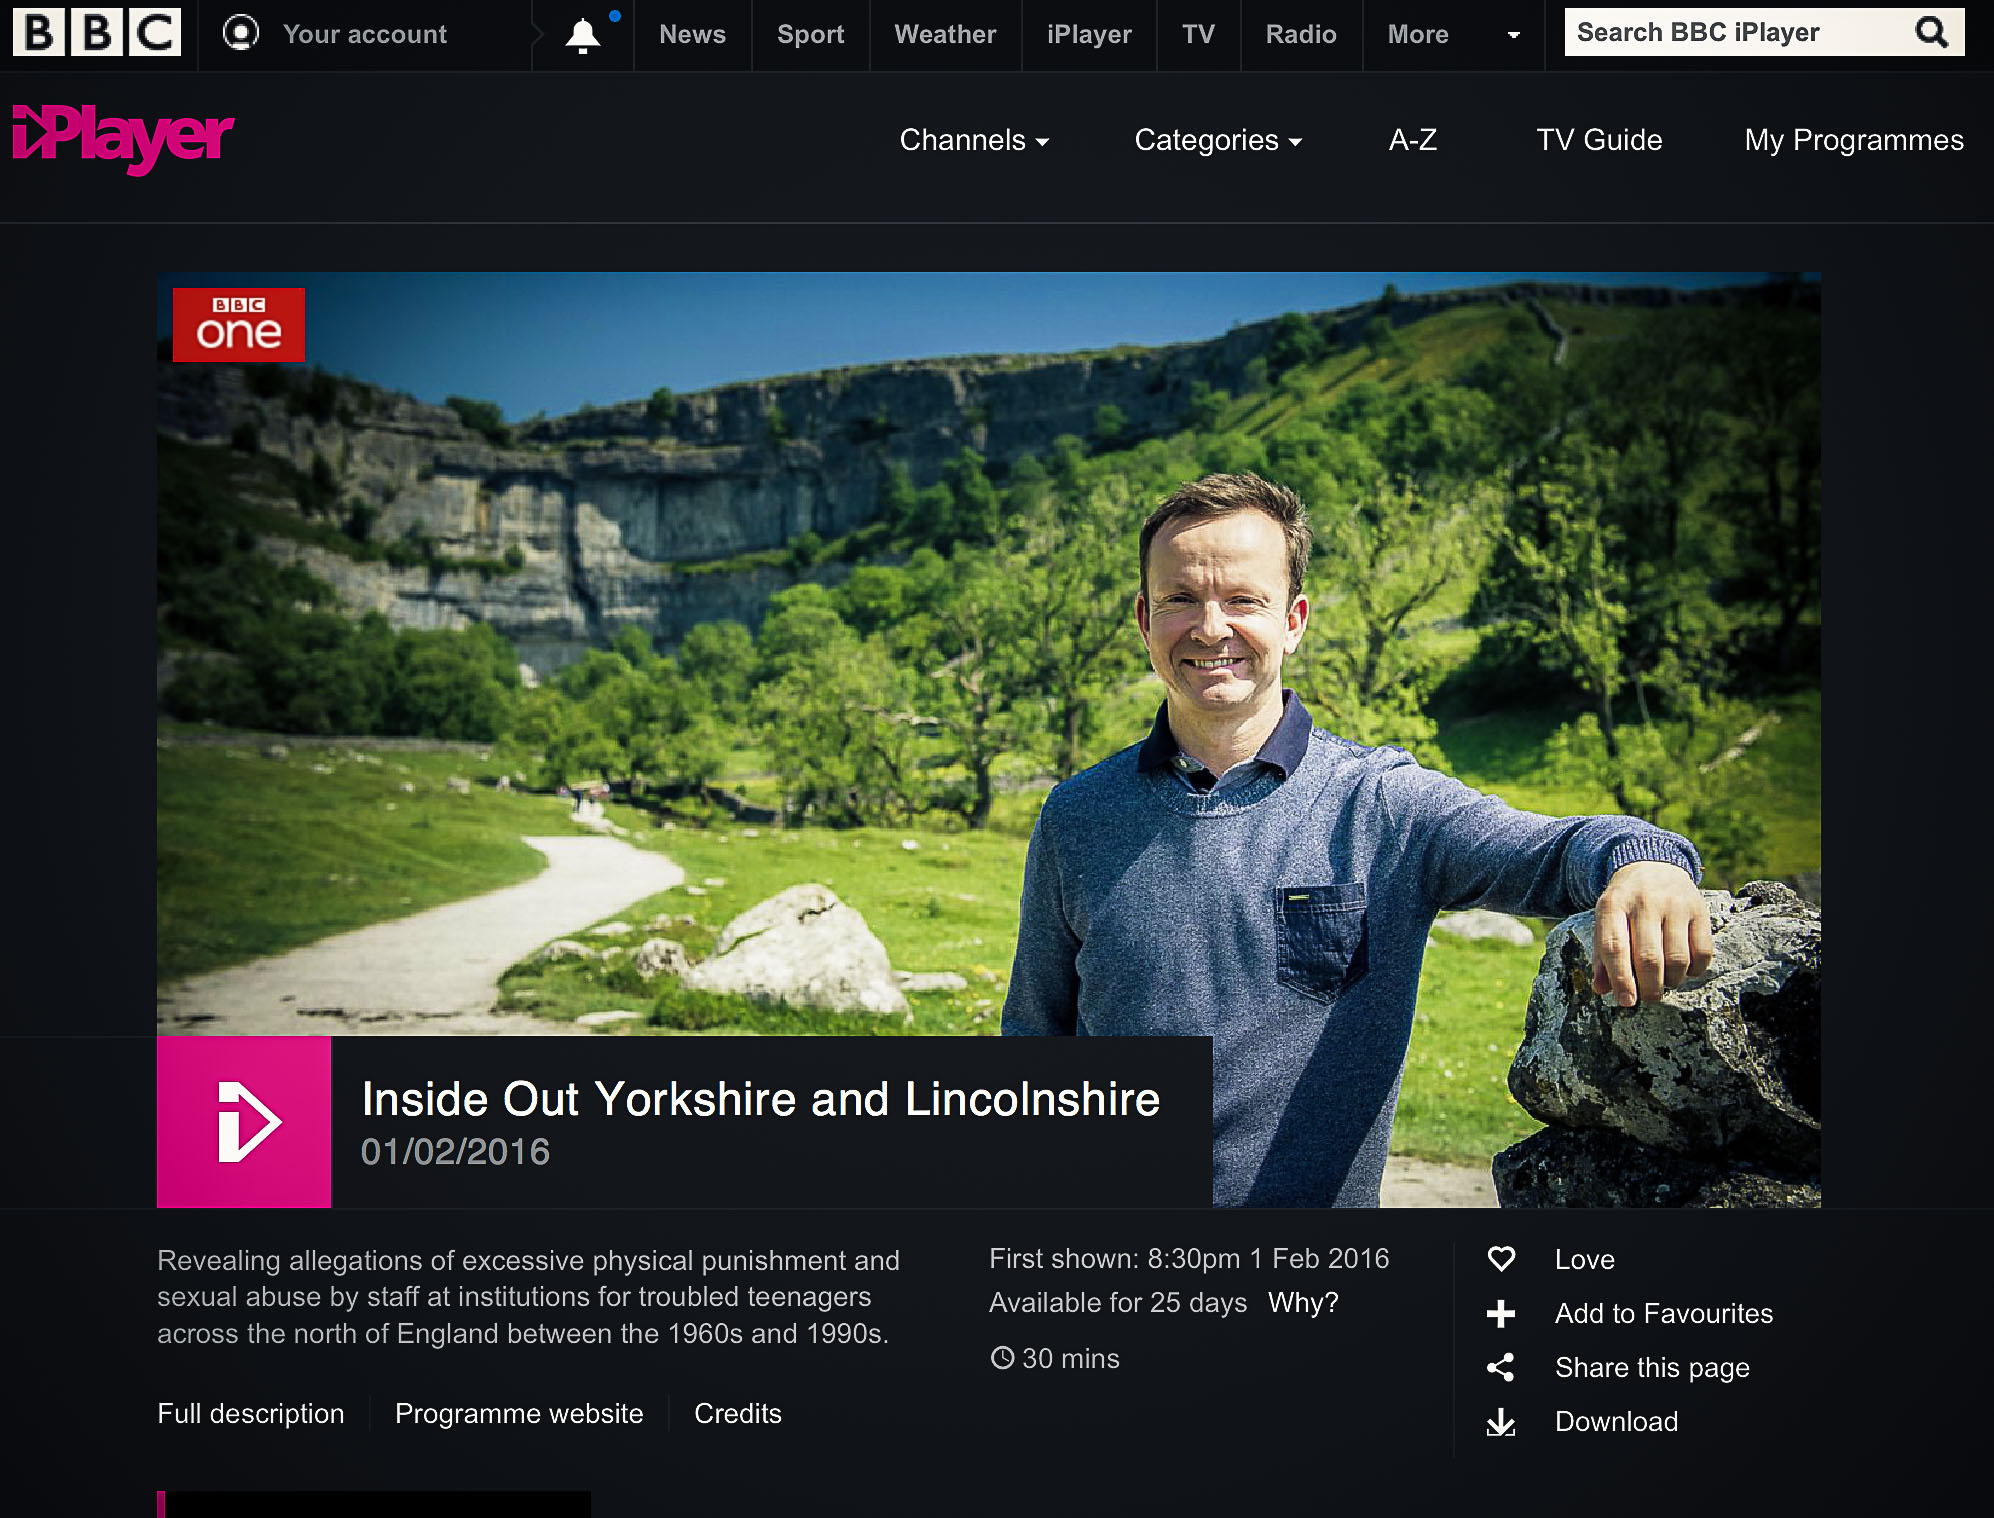 BBC_iplayer_fb-1.jpg